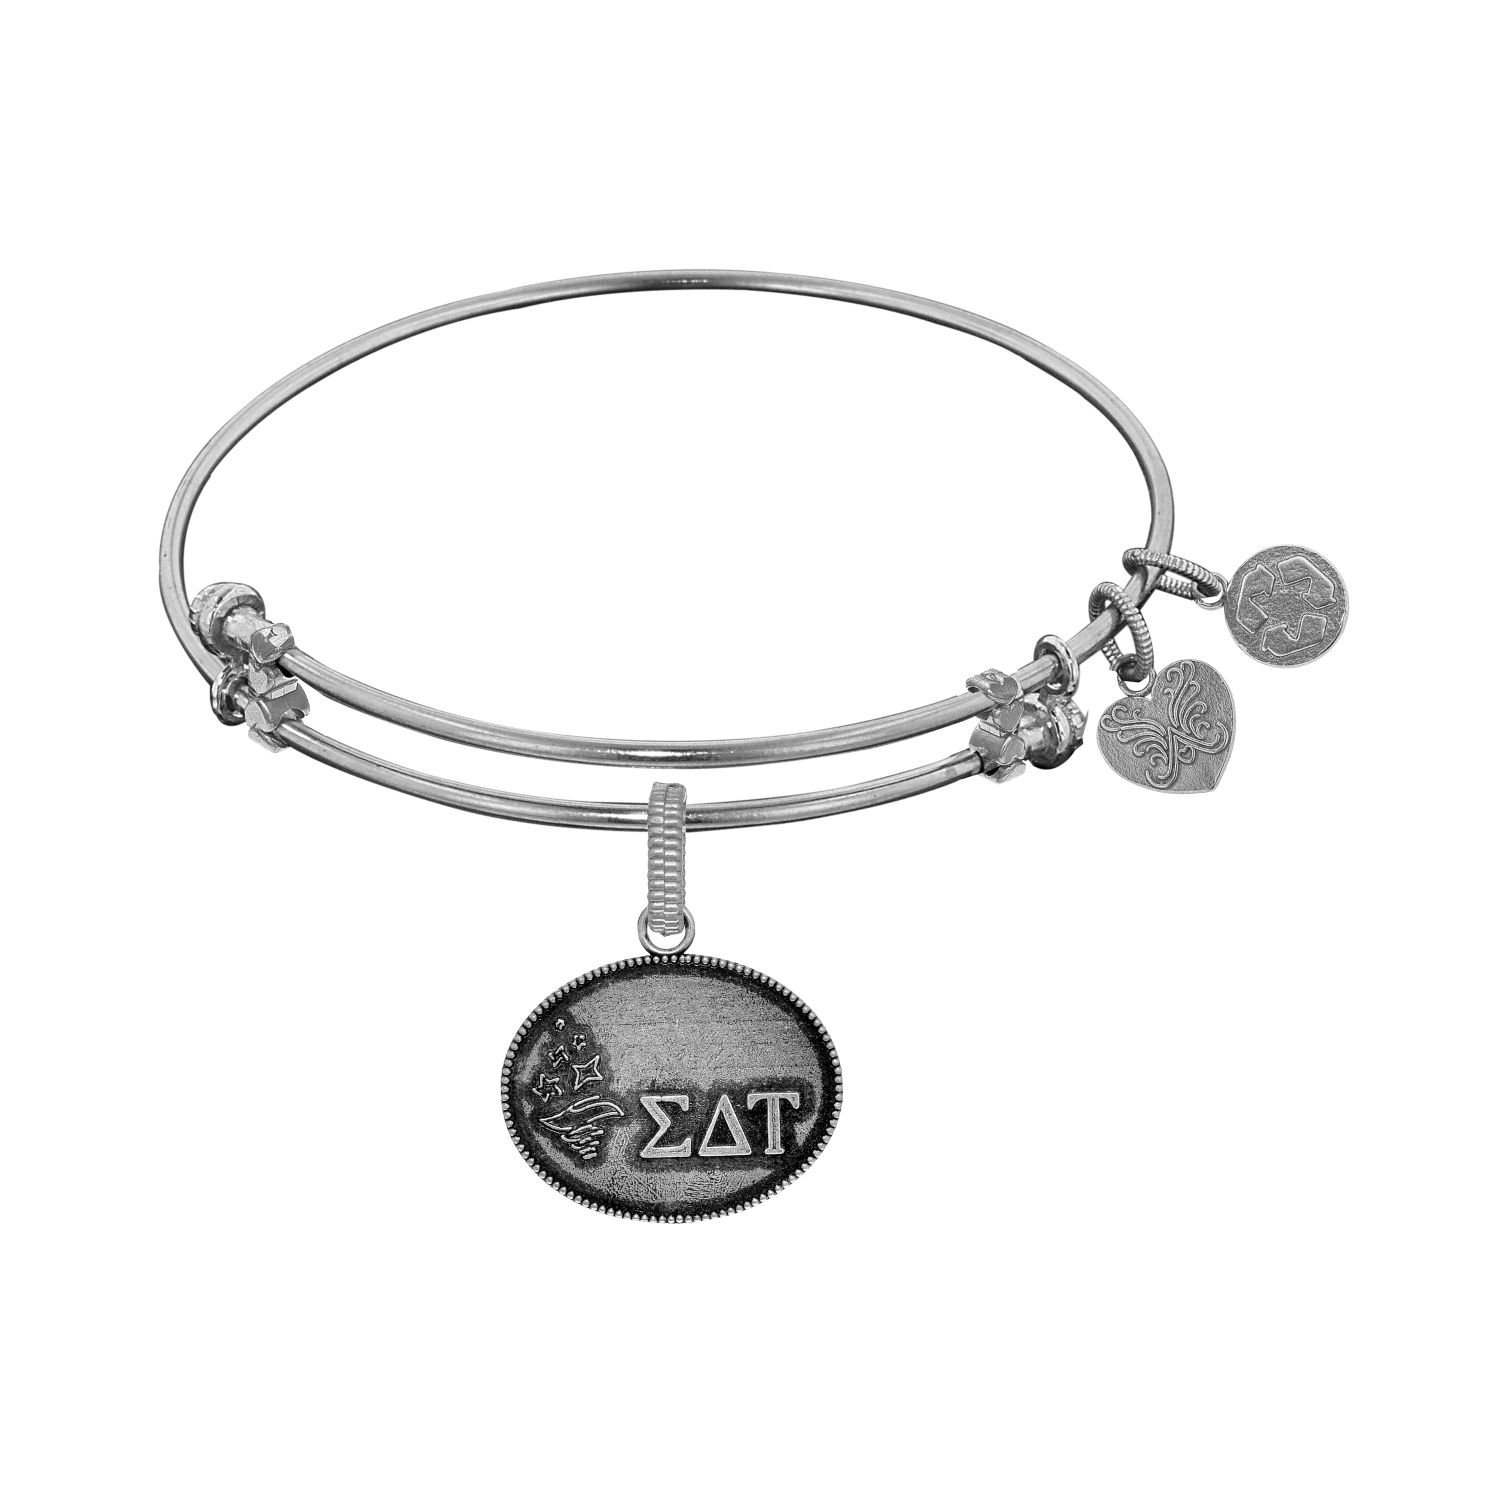 Angelica jewelry Collection Brass with White Finish Sigma Delta Tau Charm For Angelica Bangle